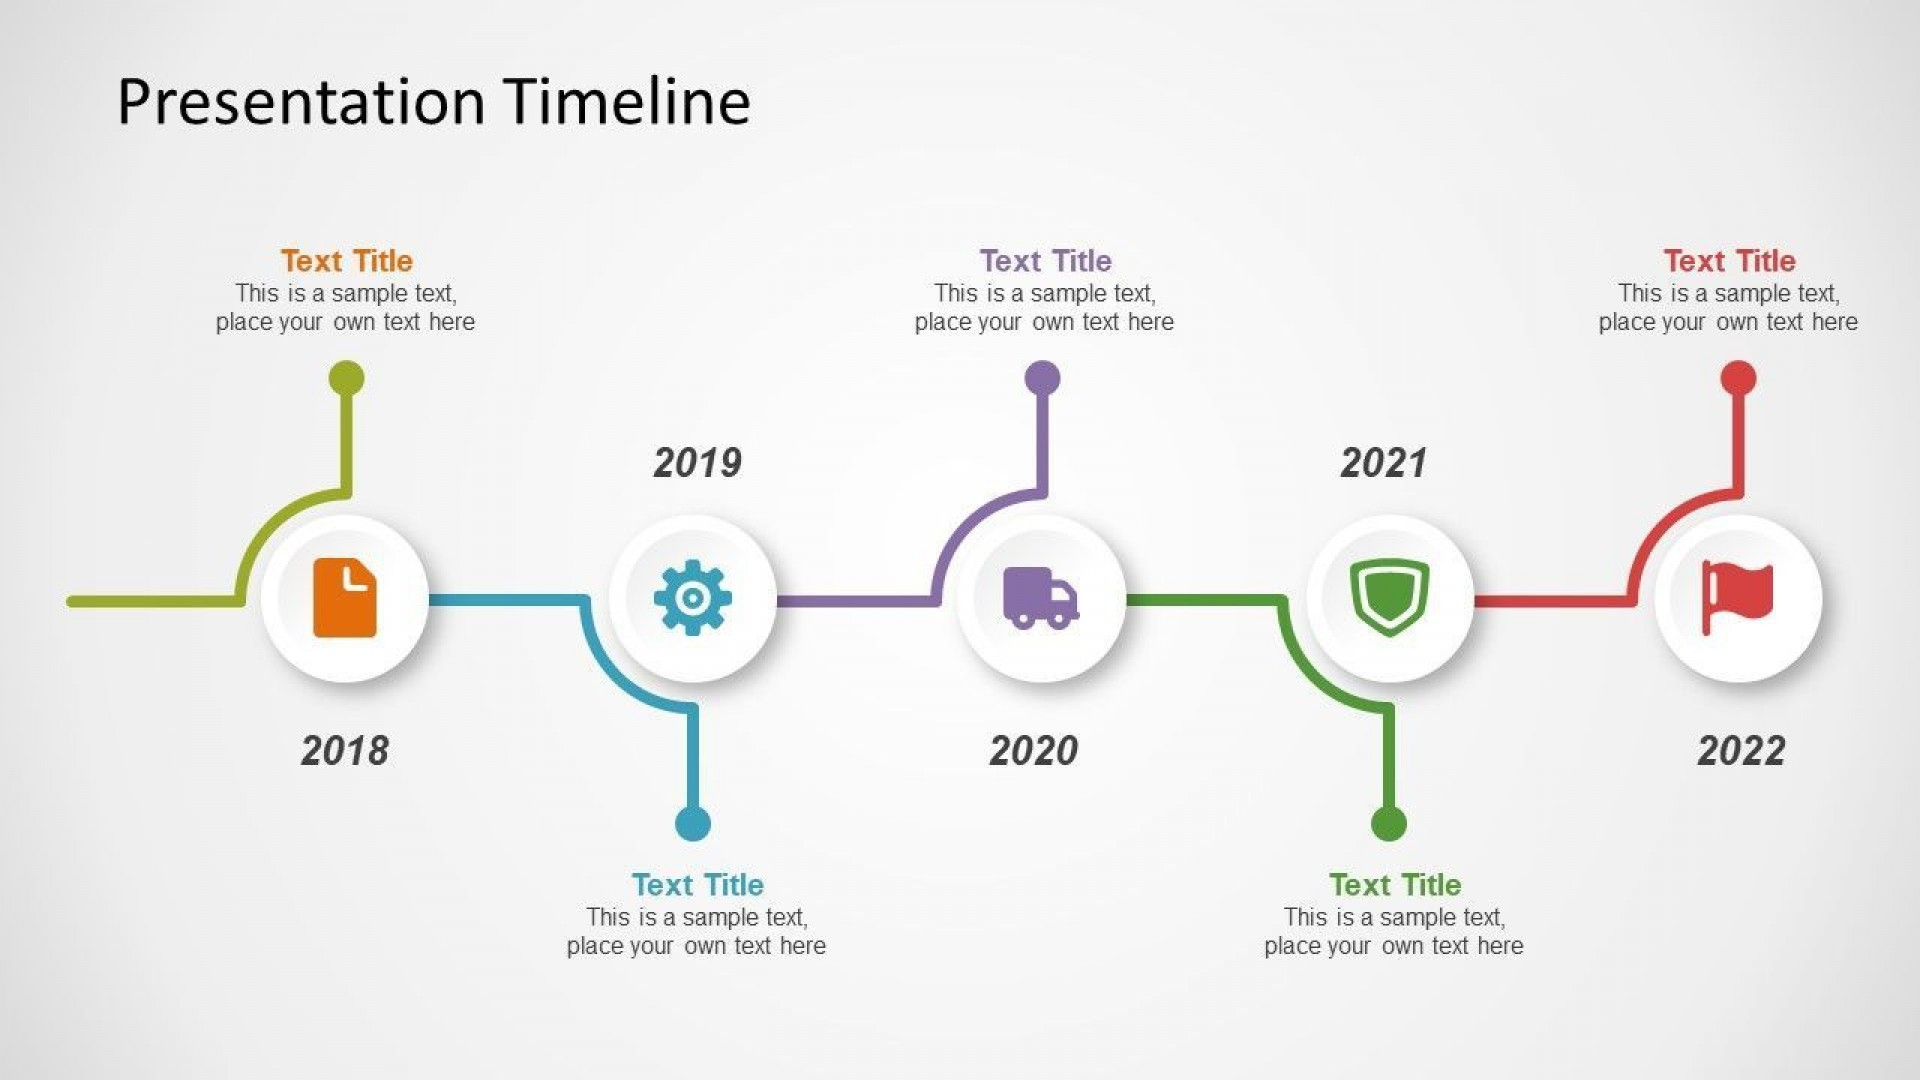 004 Outstanding Timeline Template For Presentation Image  Project Example Presentationgo1920